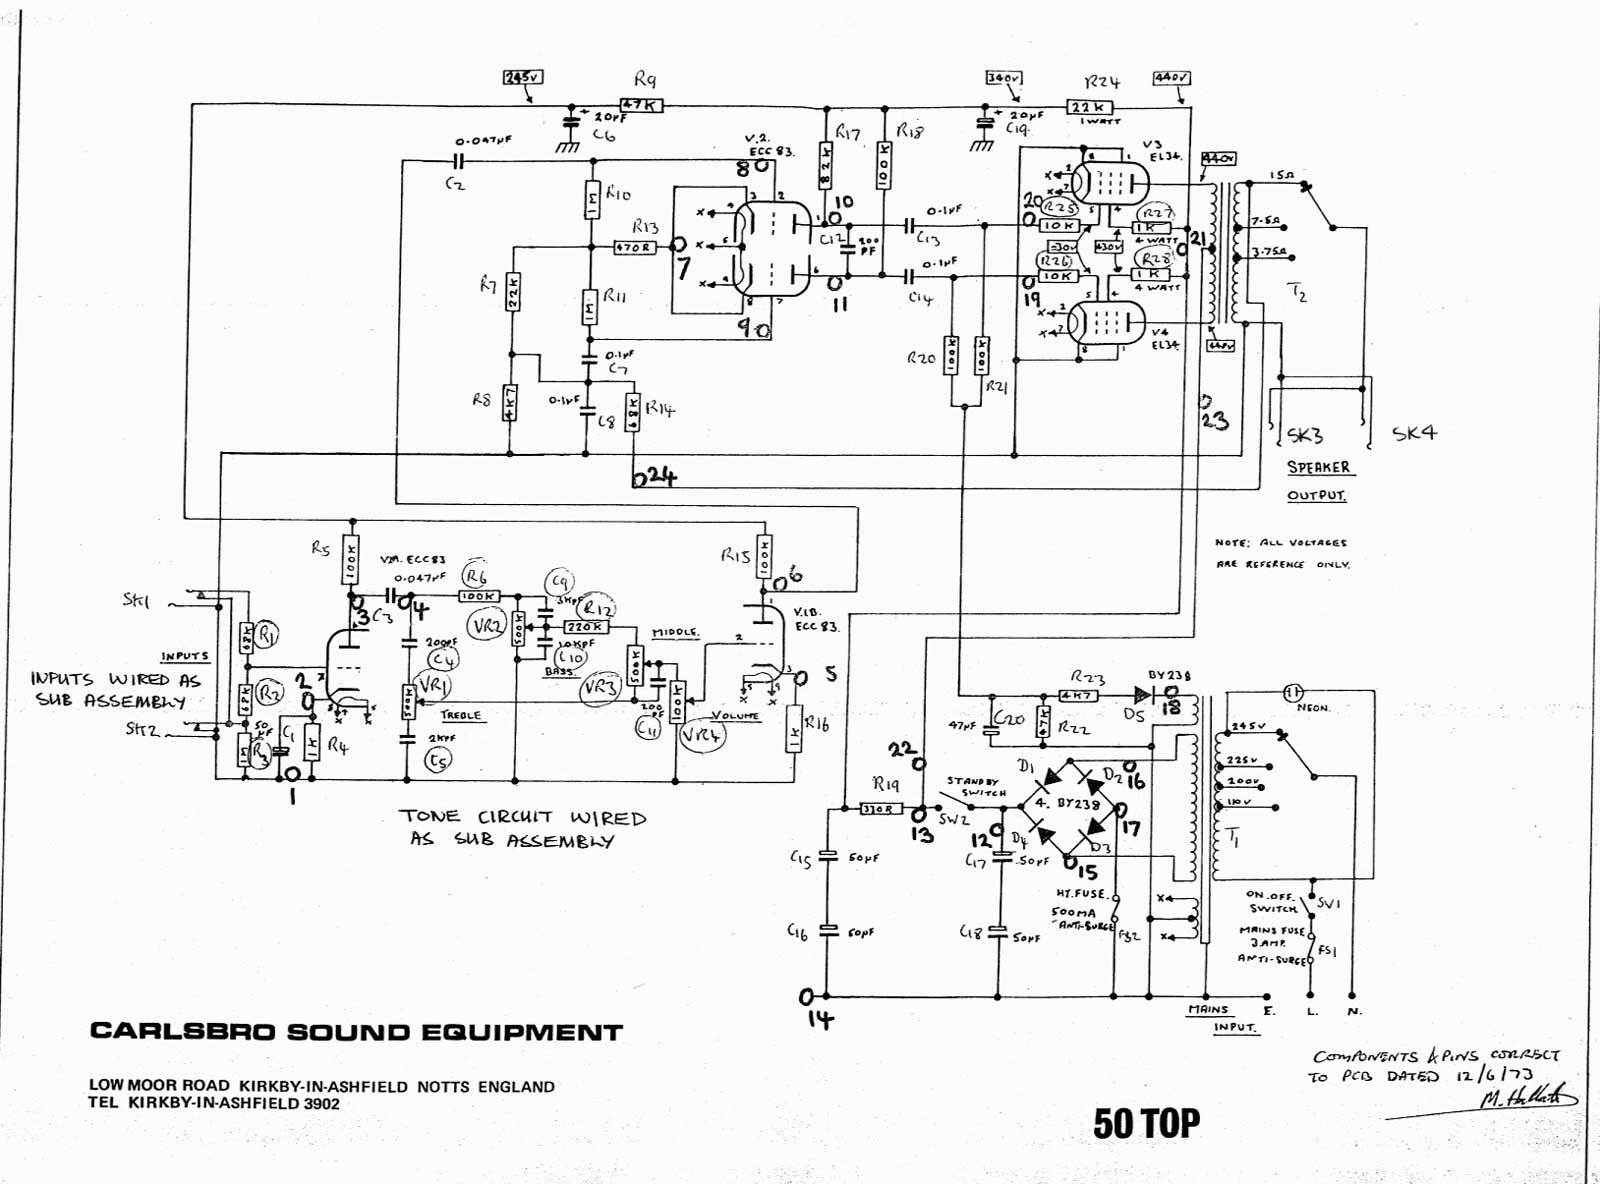 rv 50 amp service diagram rj11 to rj45 pinout wiring for